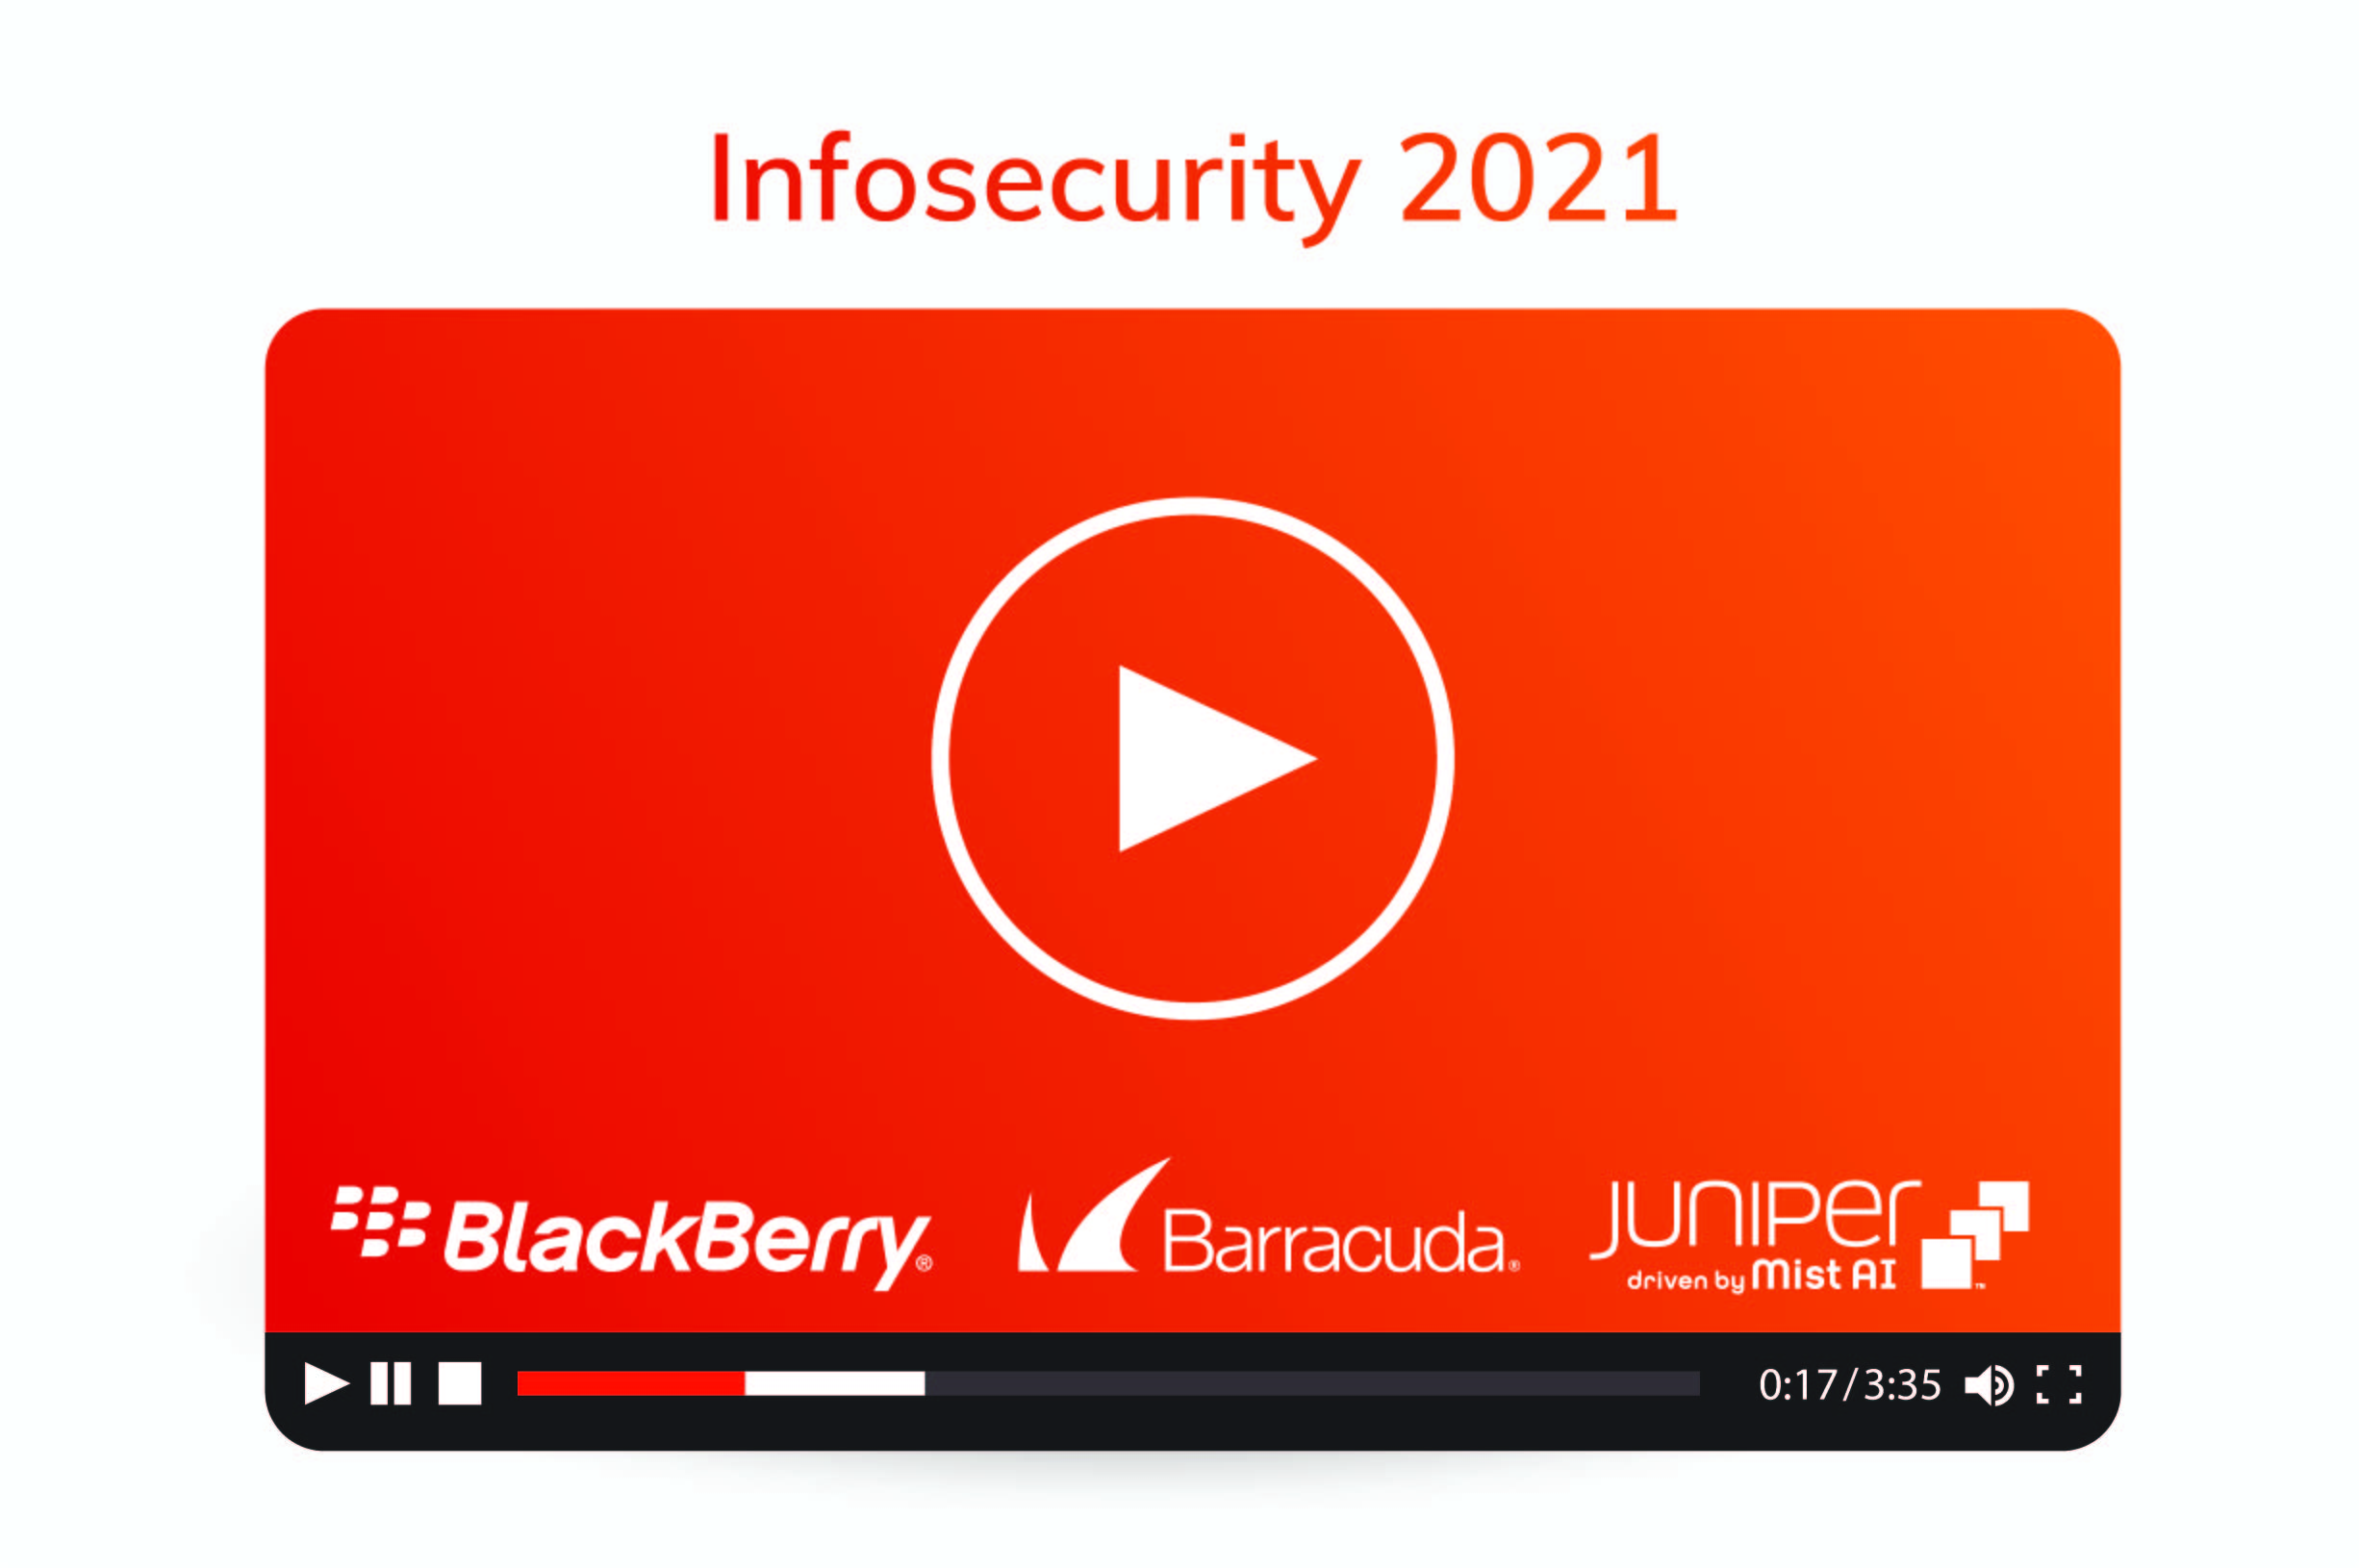 YouTube video Infosecurity 2021